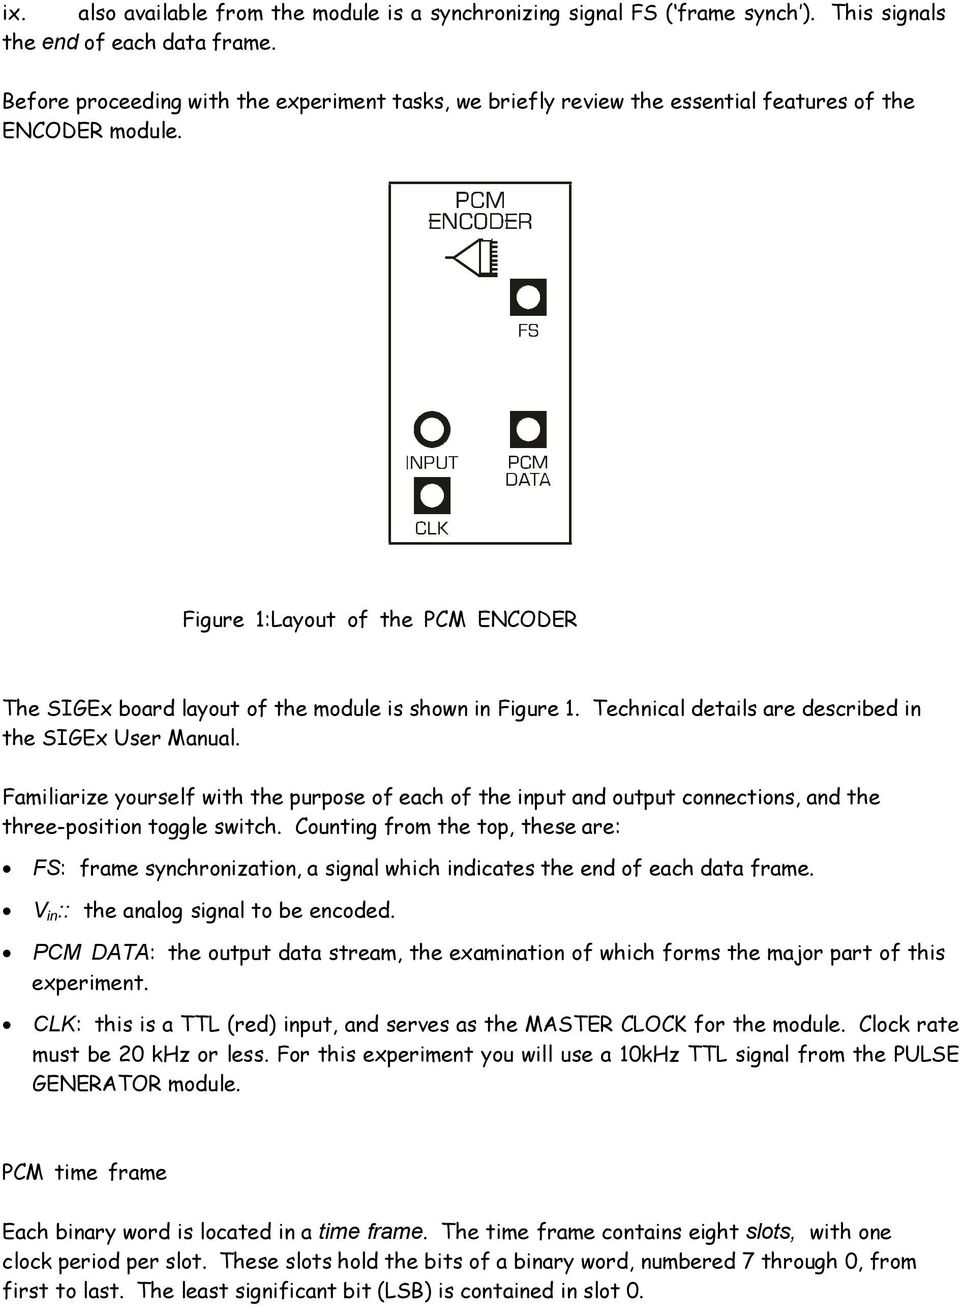 Figure 1:Layout of the PCM ENCODER The SIGEx board layout of the module is shown in Figure 1. Technical details are described in the SIGEx User Manual.